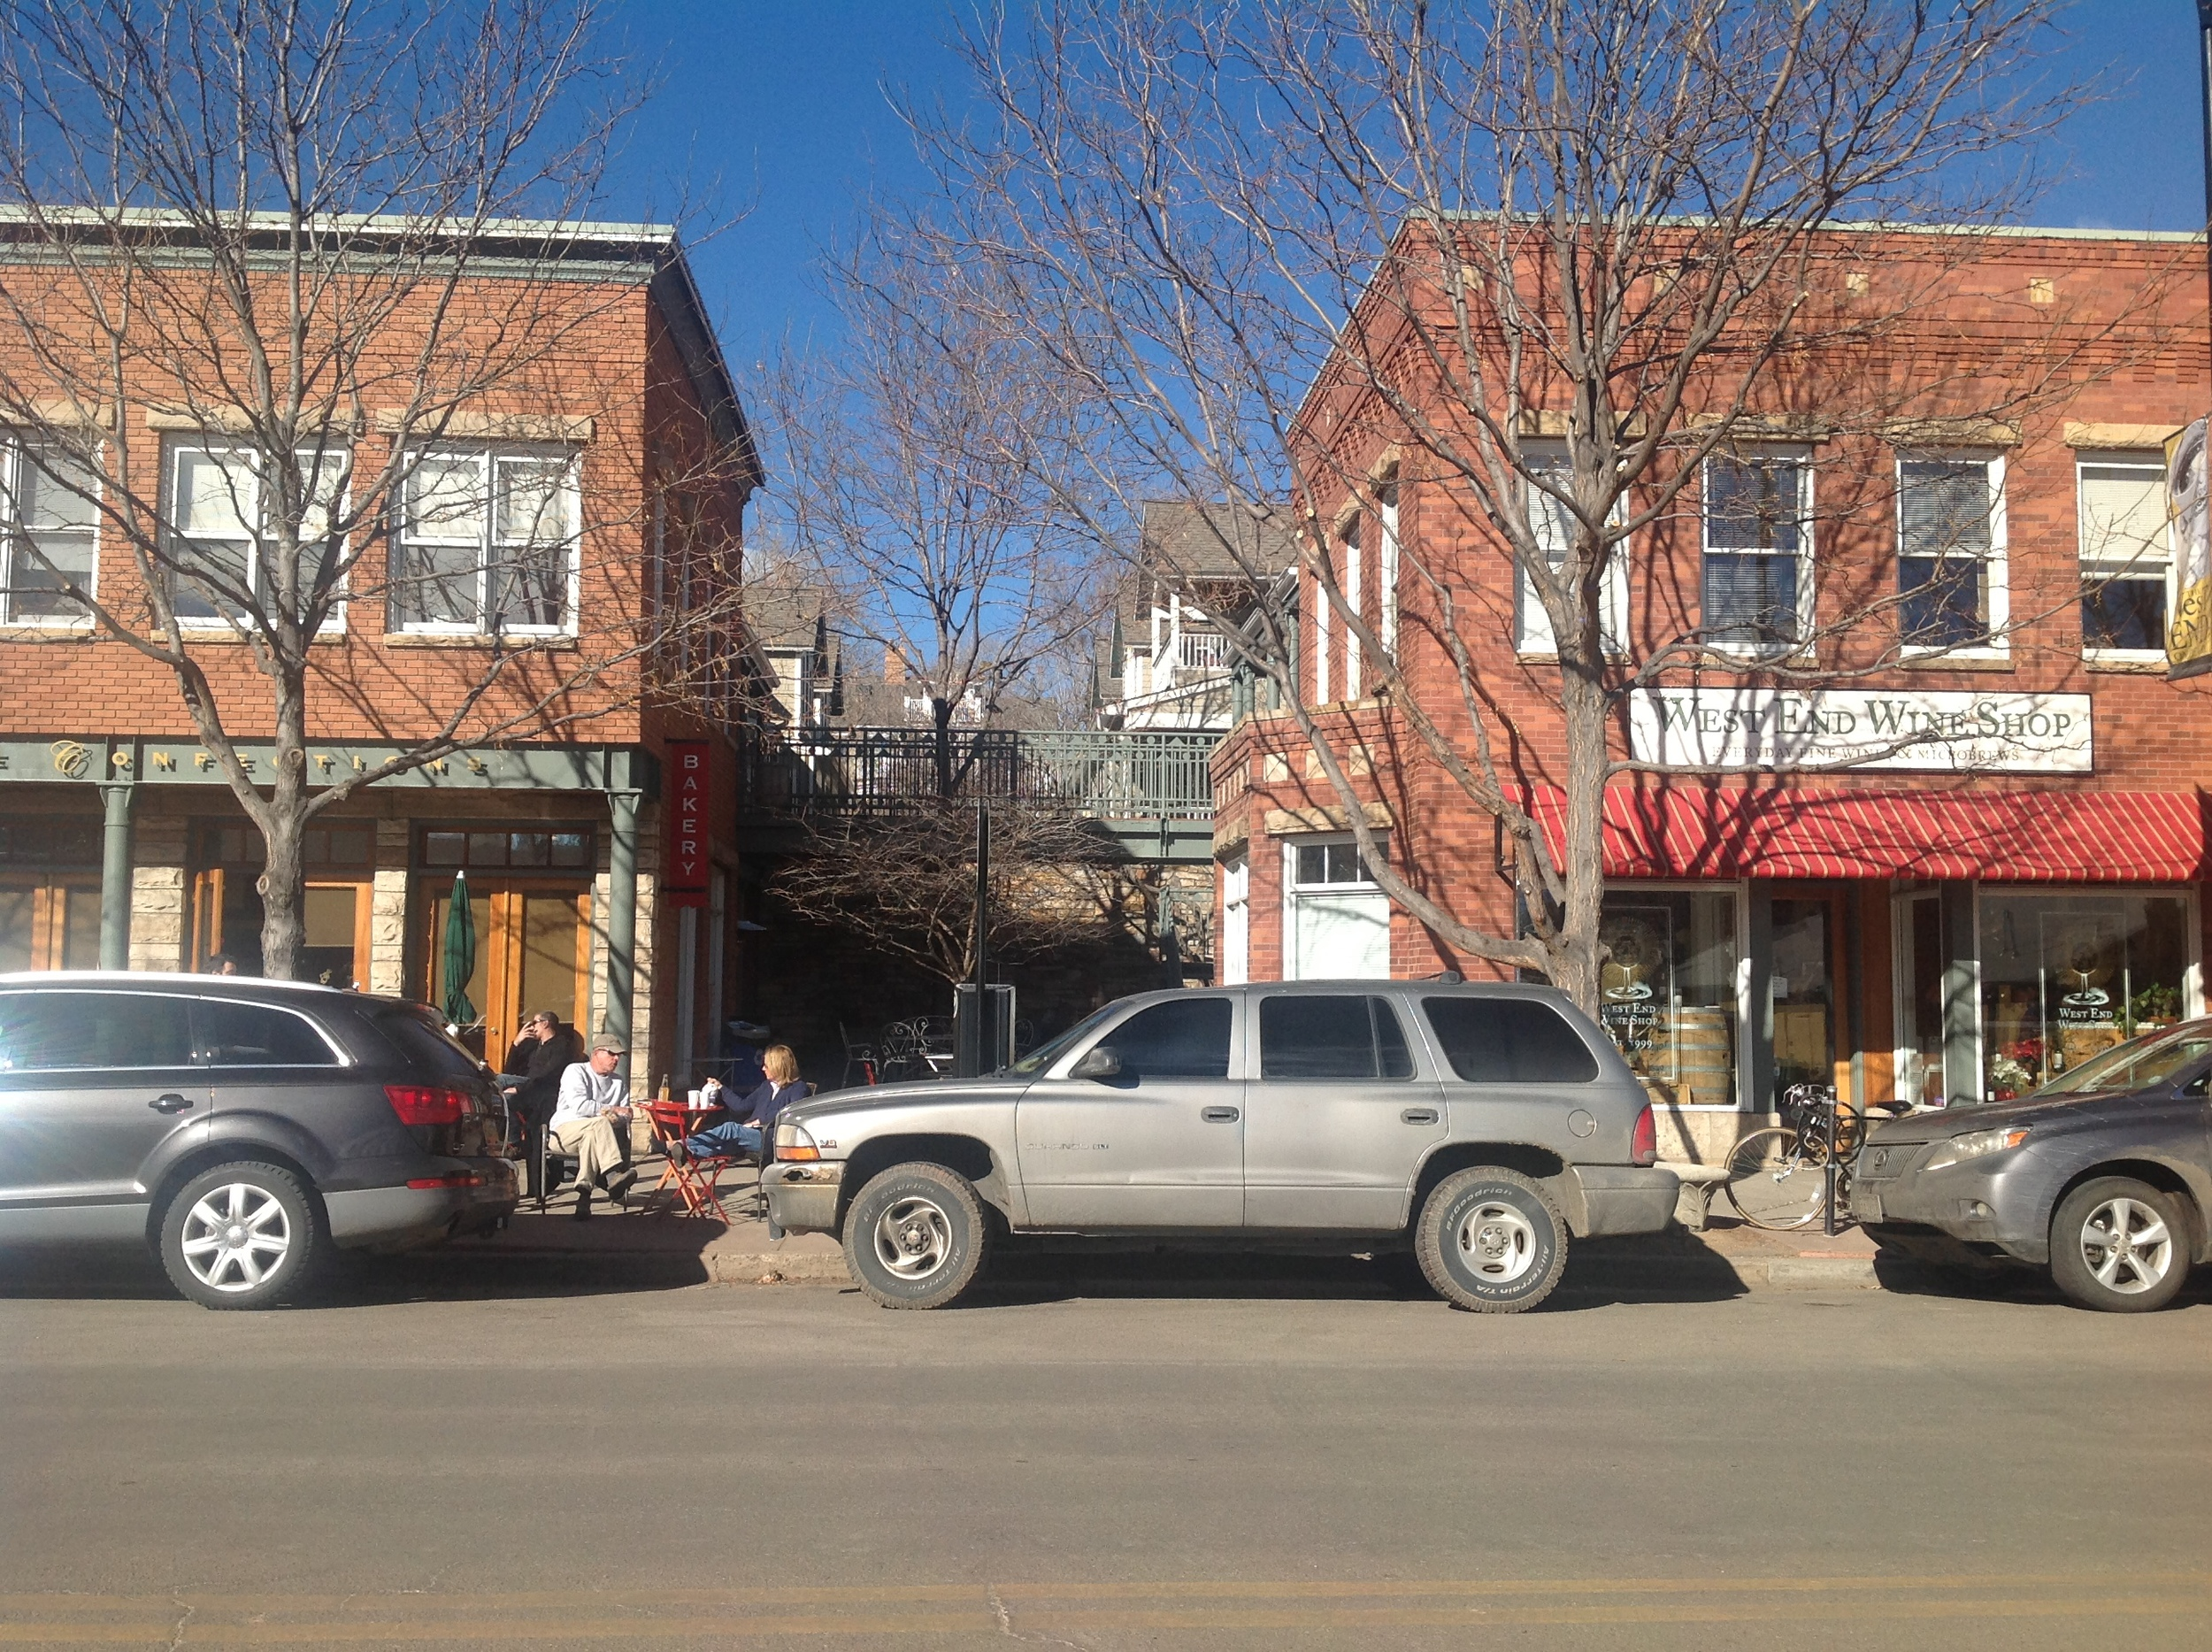 Boulder Writing Studio is located at 777 Pearl St, above The West End Wine Shop